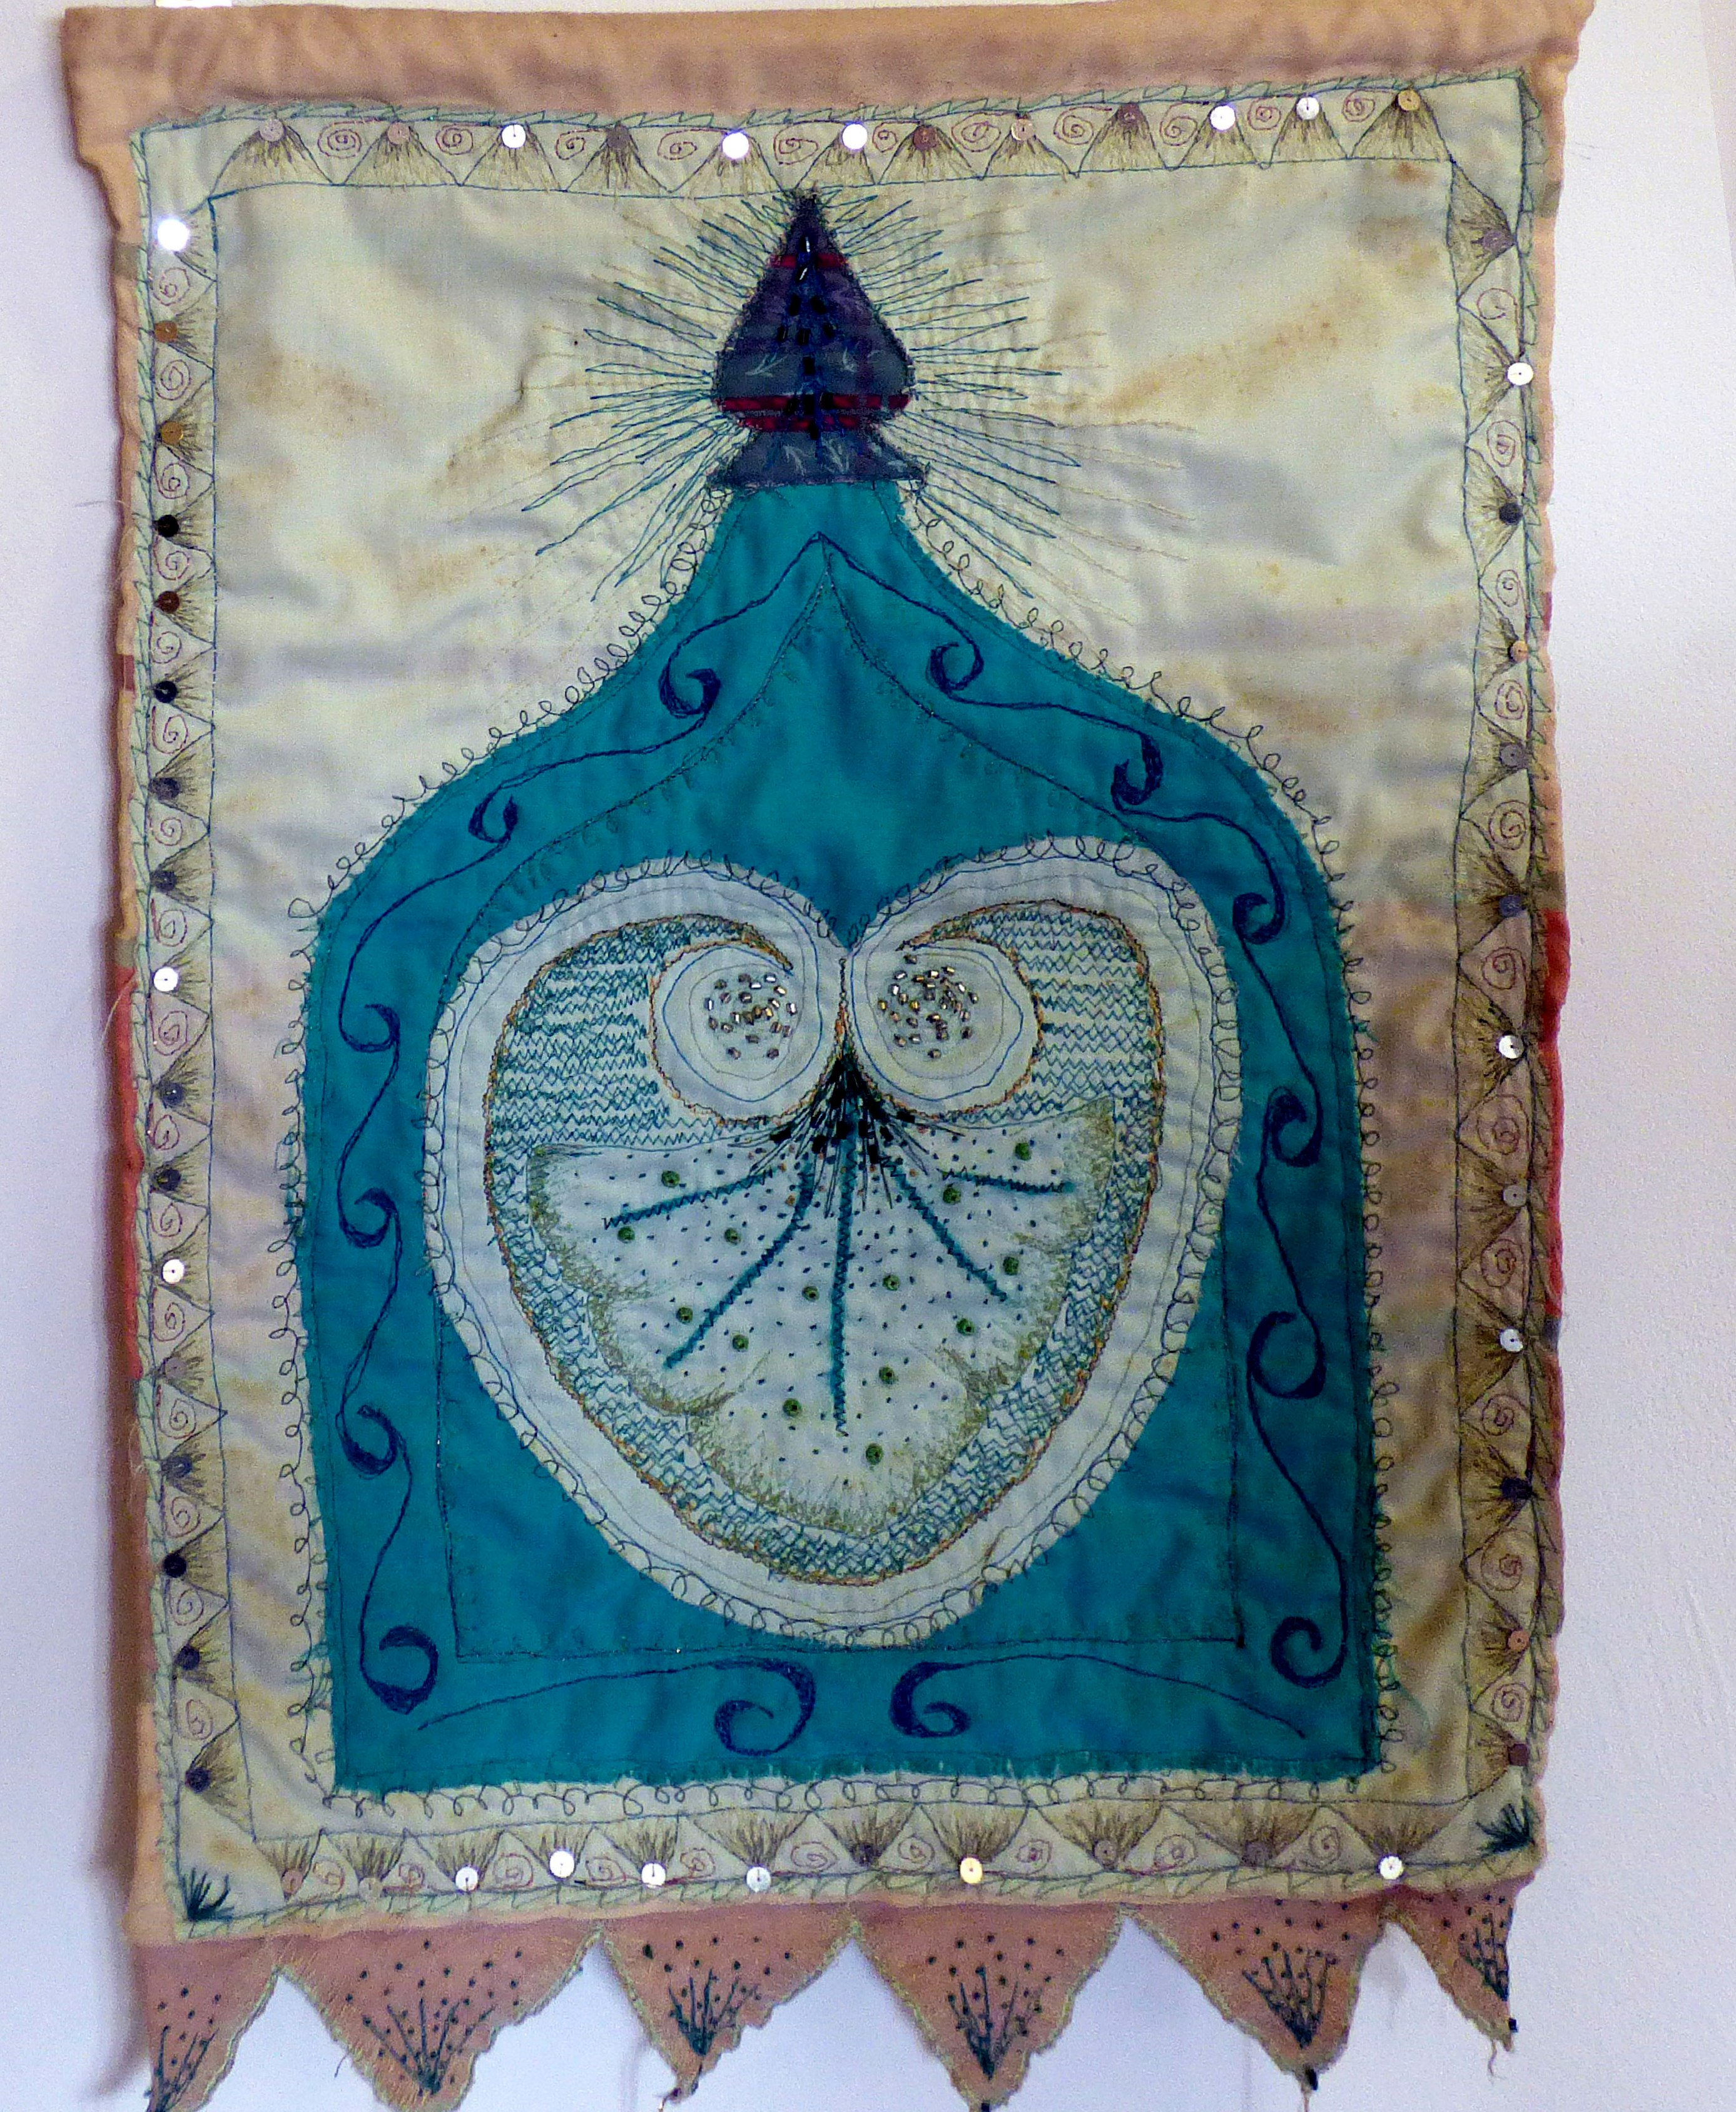 INSPIRED BY ARCHITECTURE by Victoria Flood, 1993, applique with hand and machine embroidery